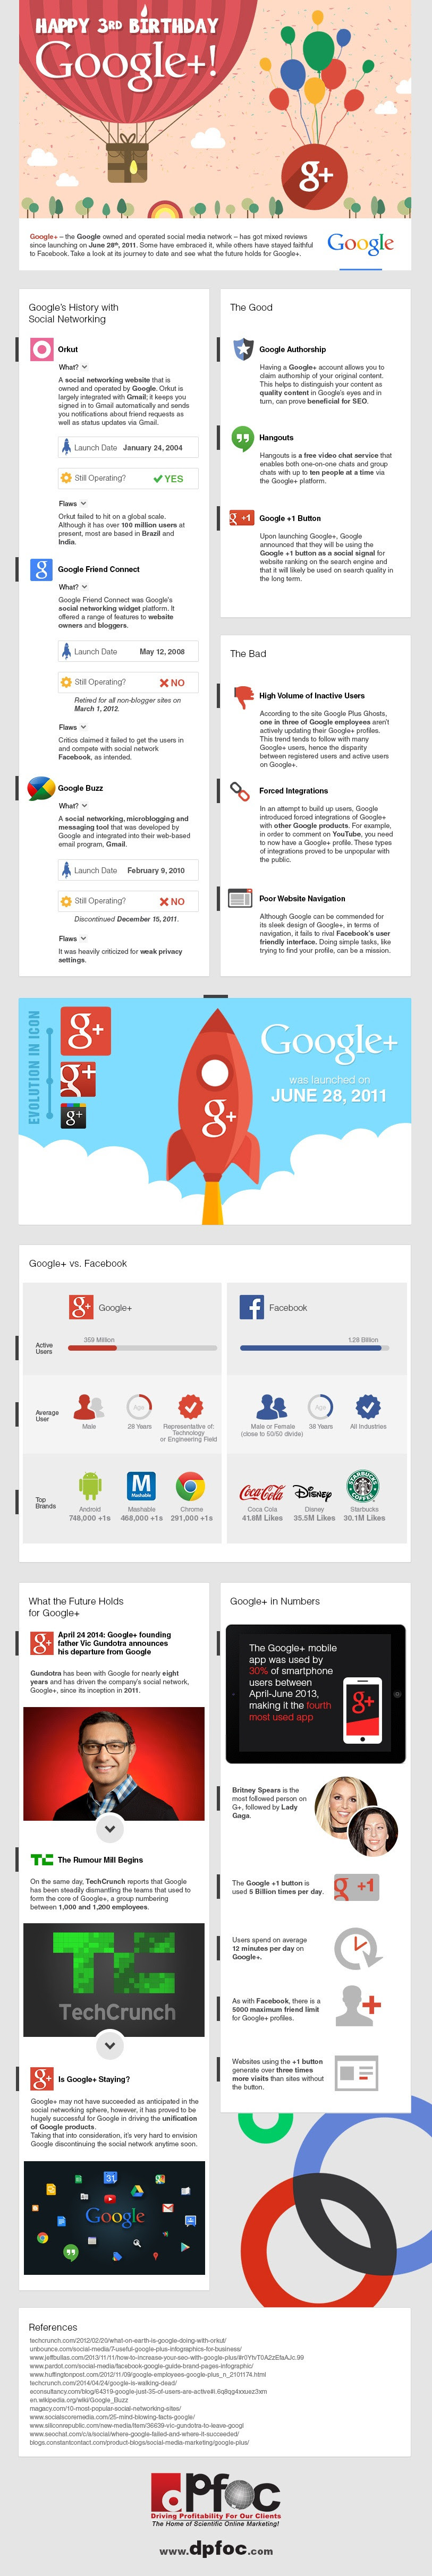 June 28th 2014 marks the 3rd birthday of Google's social media platform GooglePlus. At only three years old, it is still in its infancy yet it has faced the harshest of criticisms and ridicule at times of all the social networks. Check out the Timeline Of Google+  - infographic